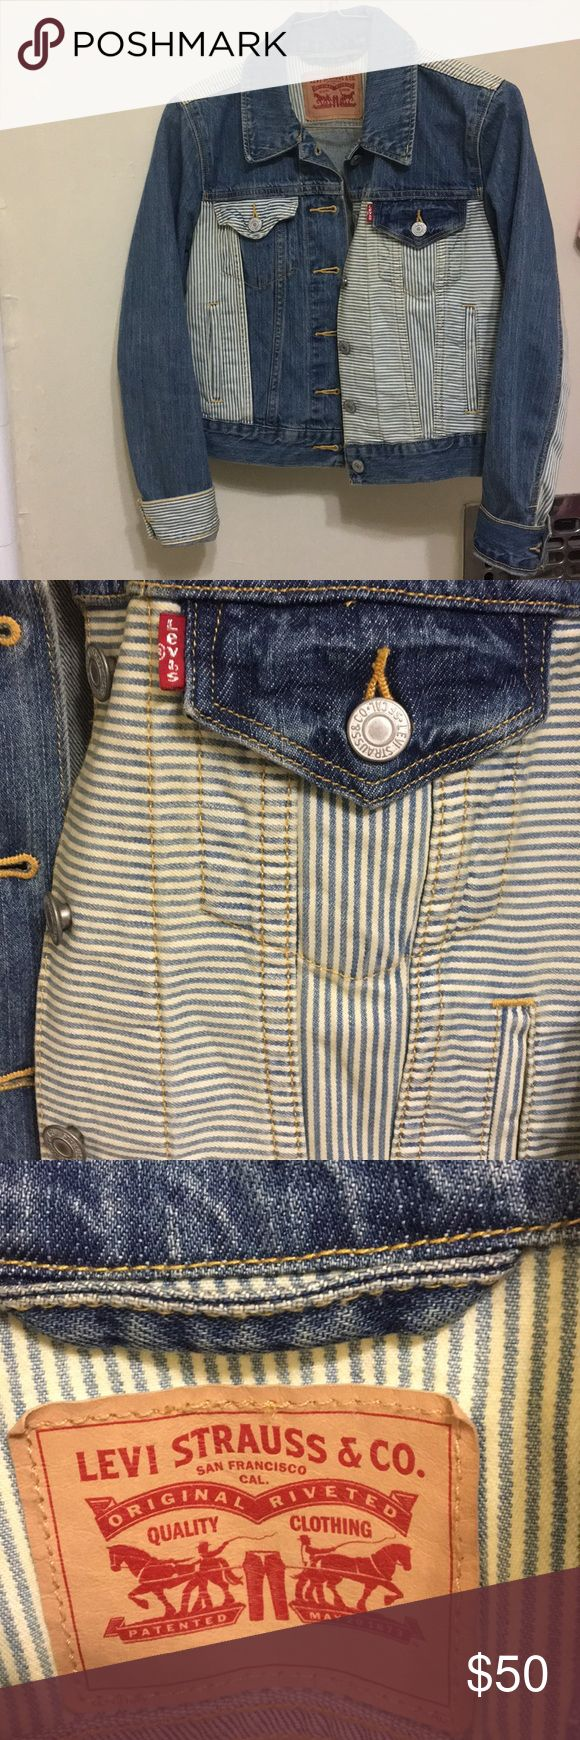 LEVI'S vintage jacket!! cutest levi's jacket ever, great condition, it'll be hard to find any levi's vintage piece for as cheap as this!! Levi's Jackets & Coats Jean Jackets